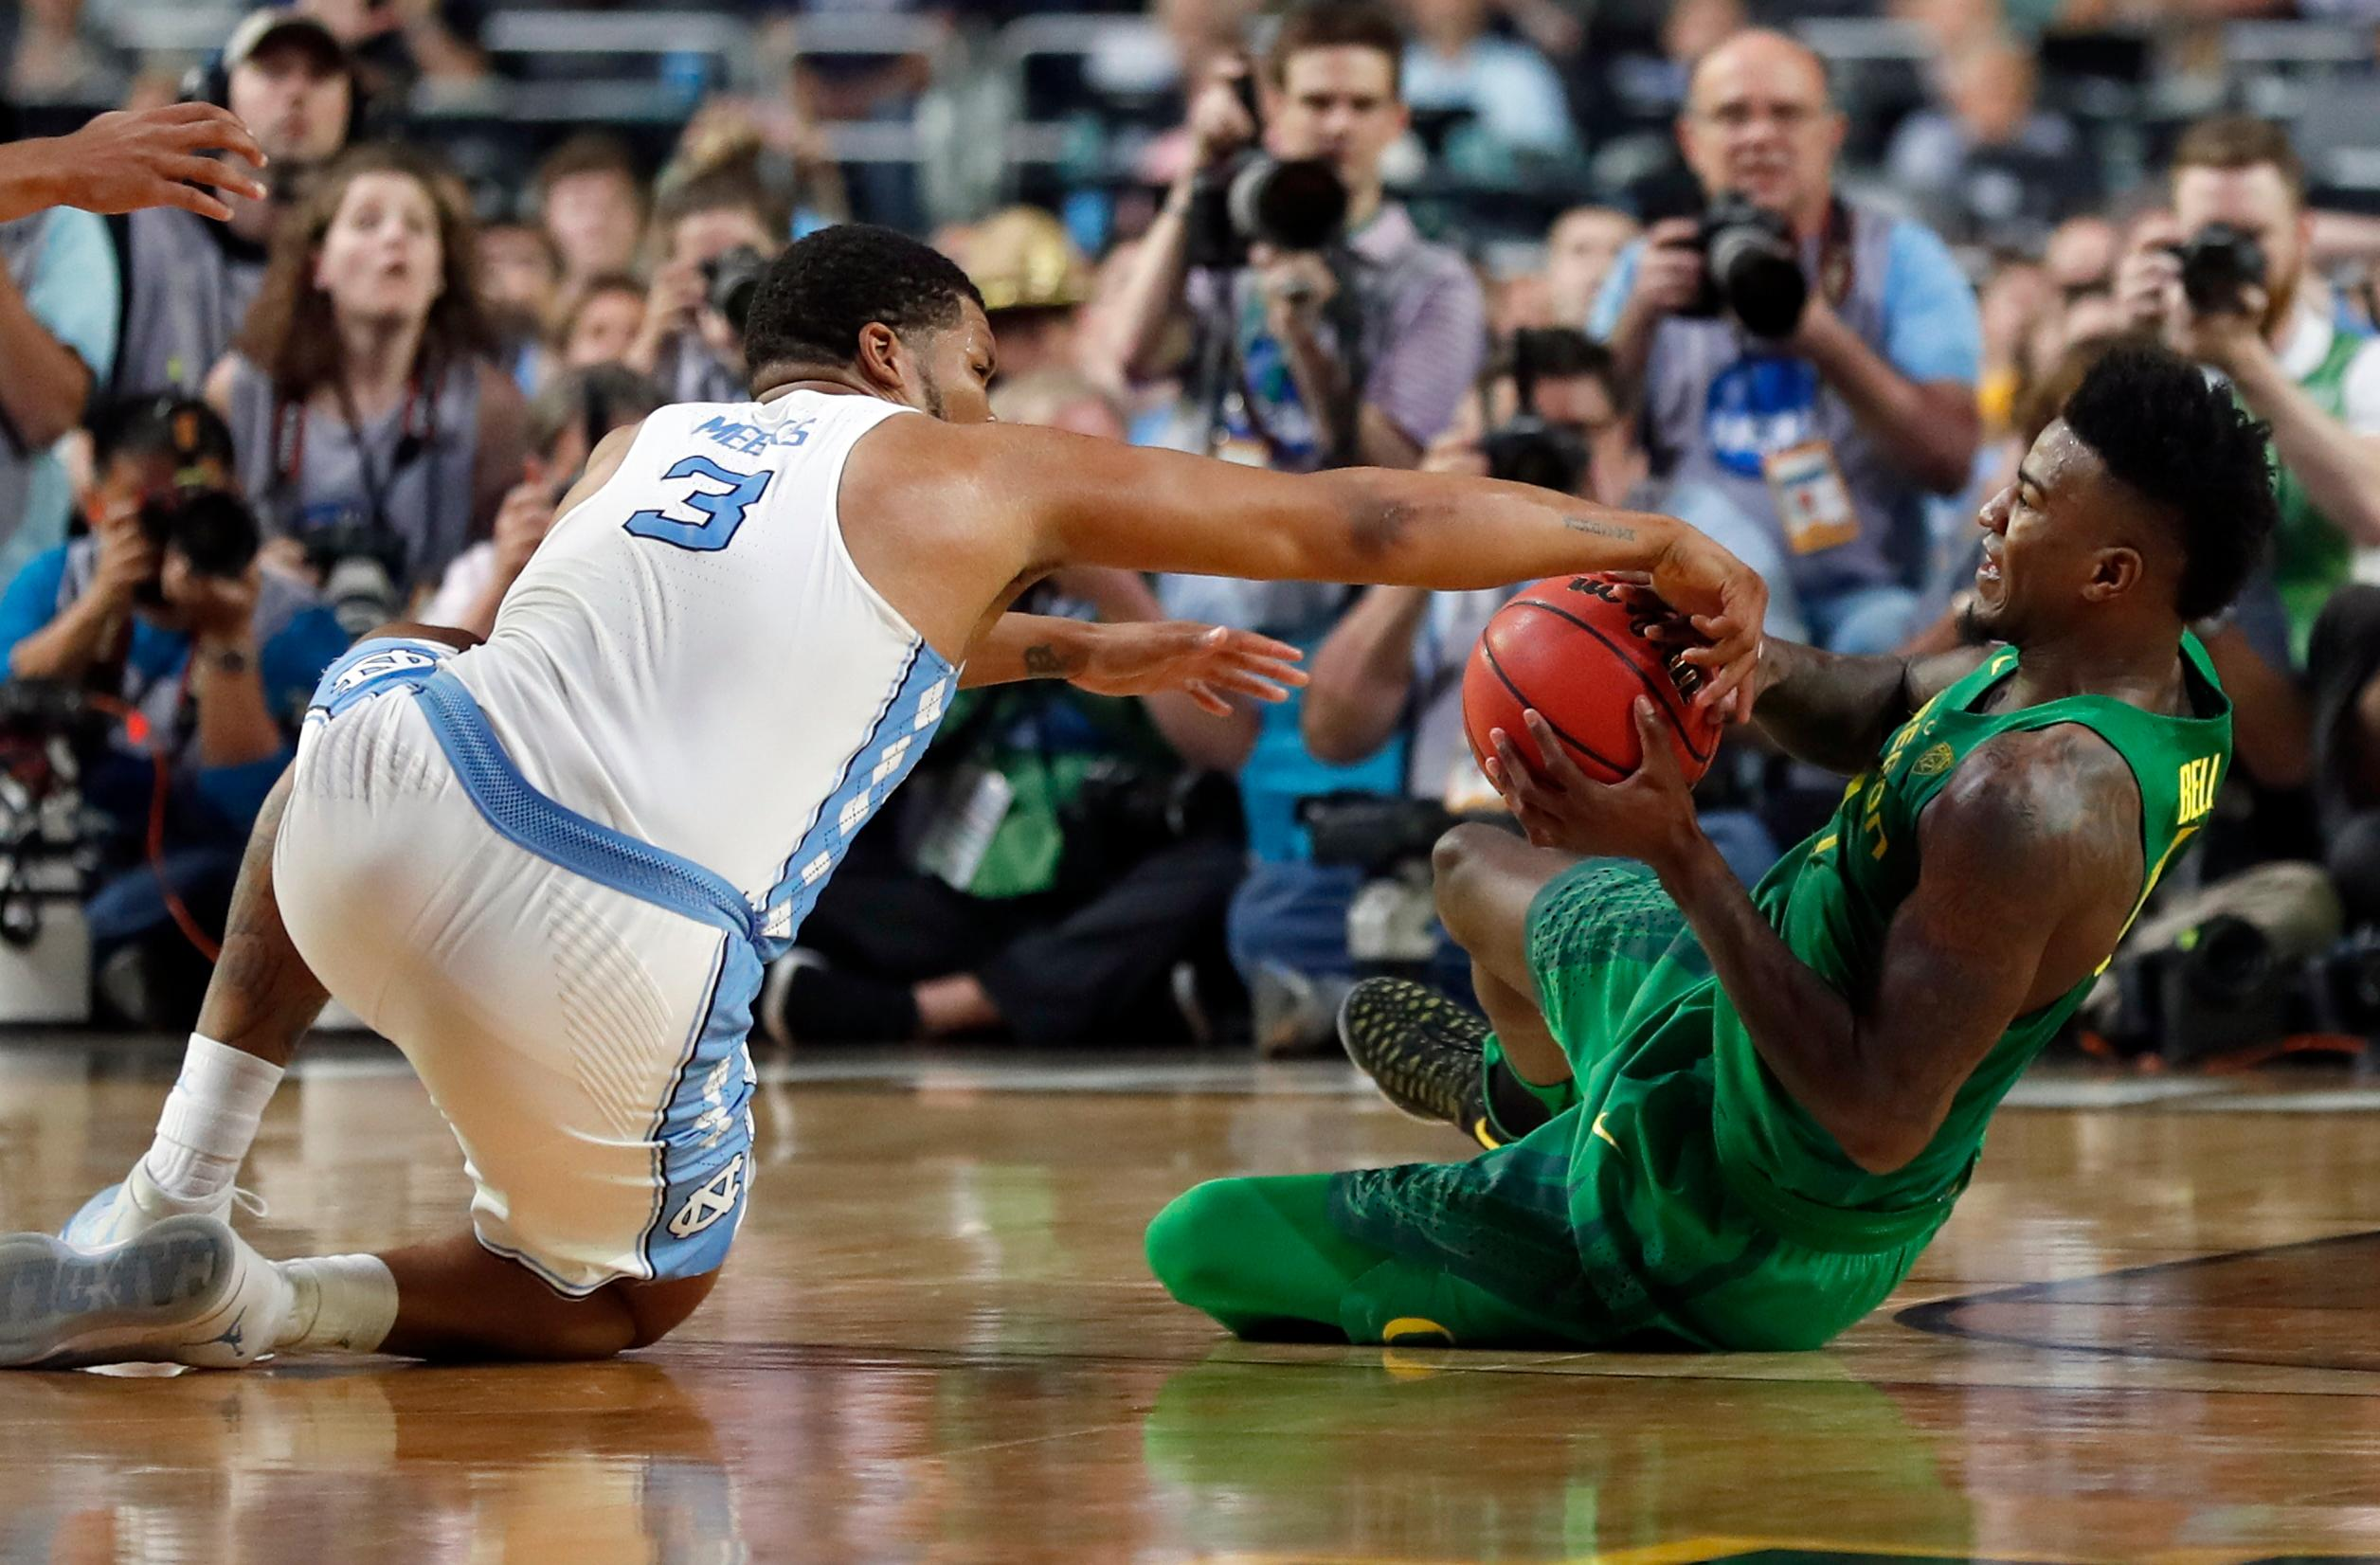 North Carolina's Kennedy Meeks (3) battles for the possession of the ball against Oregon's Jordan Bell during the second half in the semifinals of the Final Four NCAA college basketball tournament, Saturday, April 1, 2017, in Glendale, Ariz. (AP Photo/Charlie Neibergall)